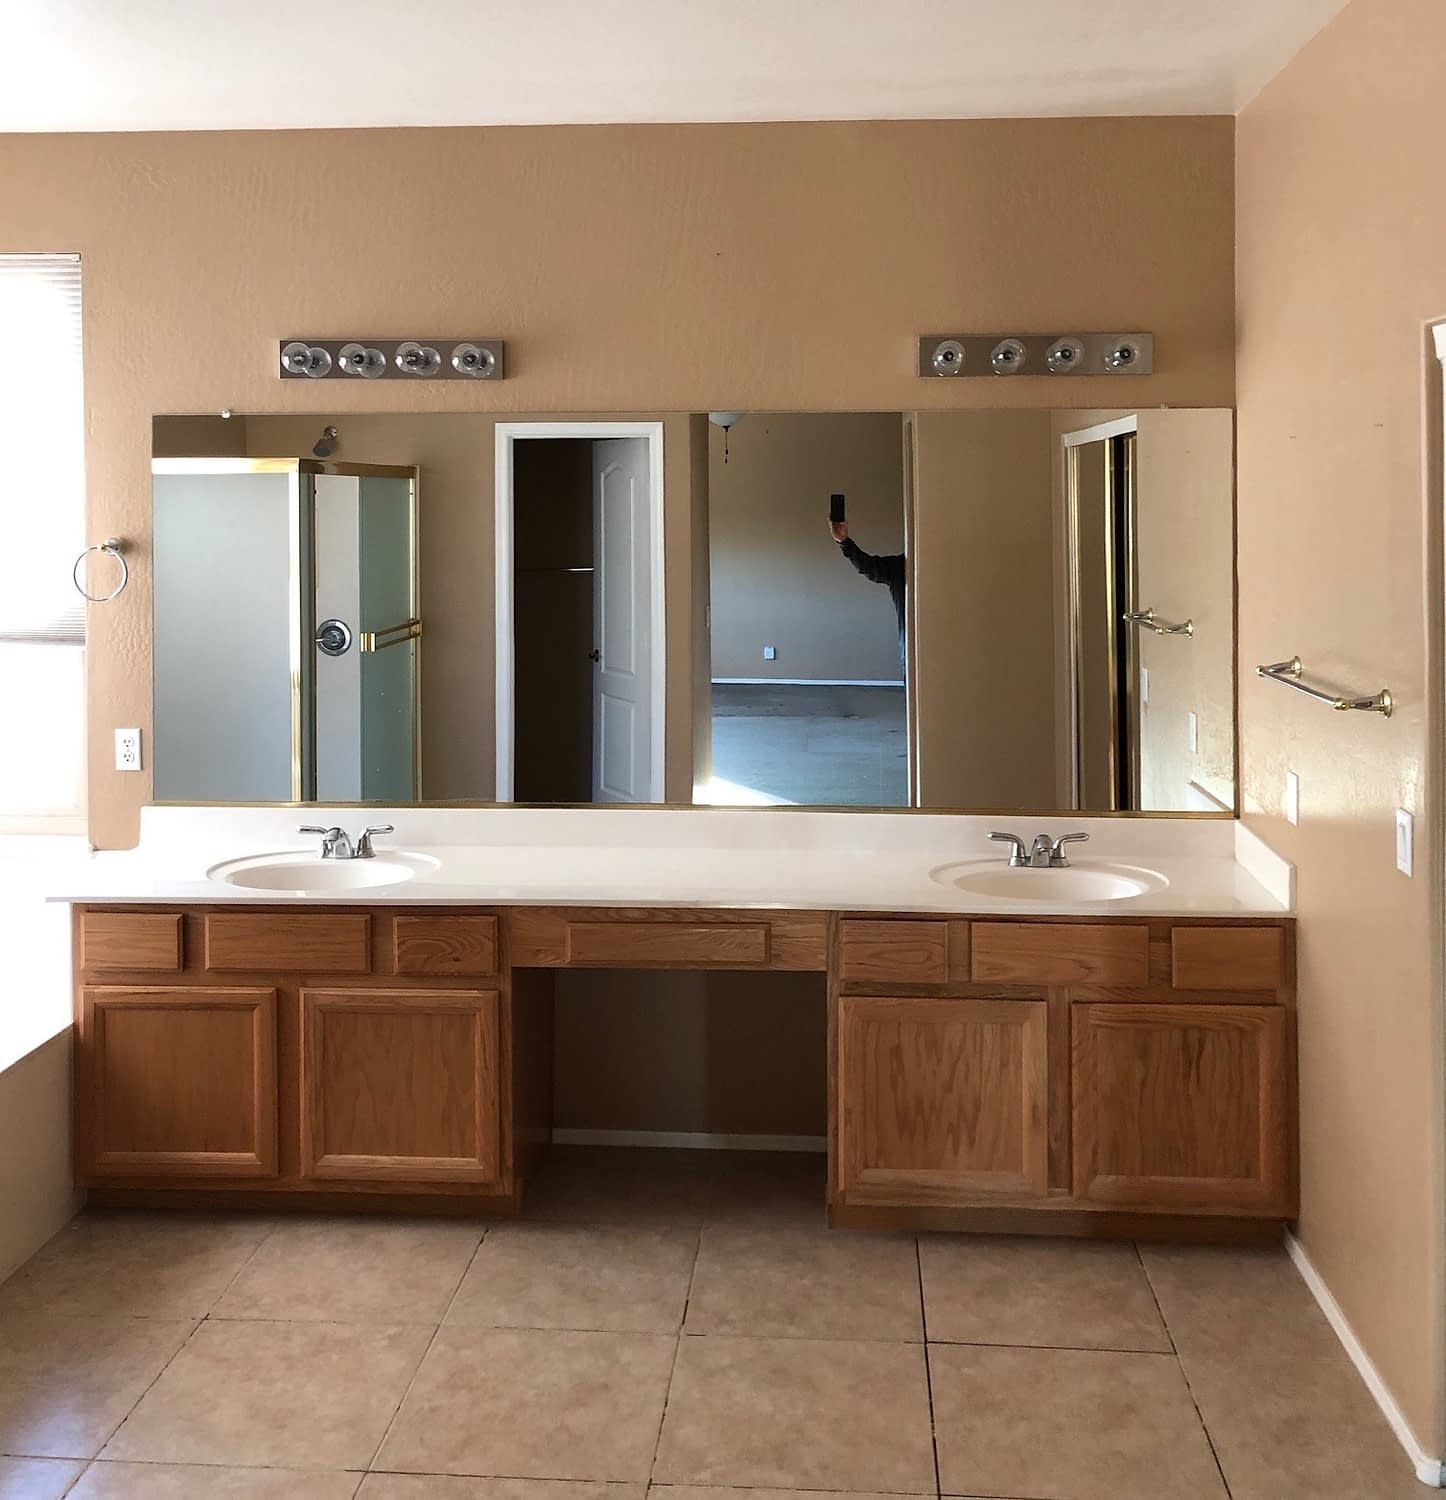 master bathroom vanity remodel Tempe before